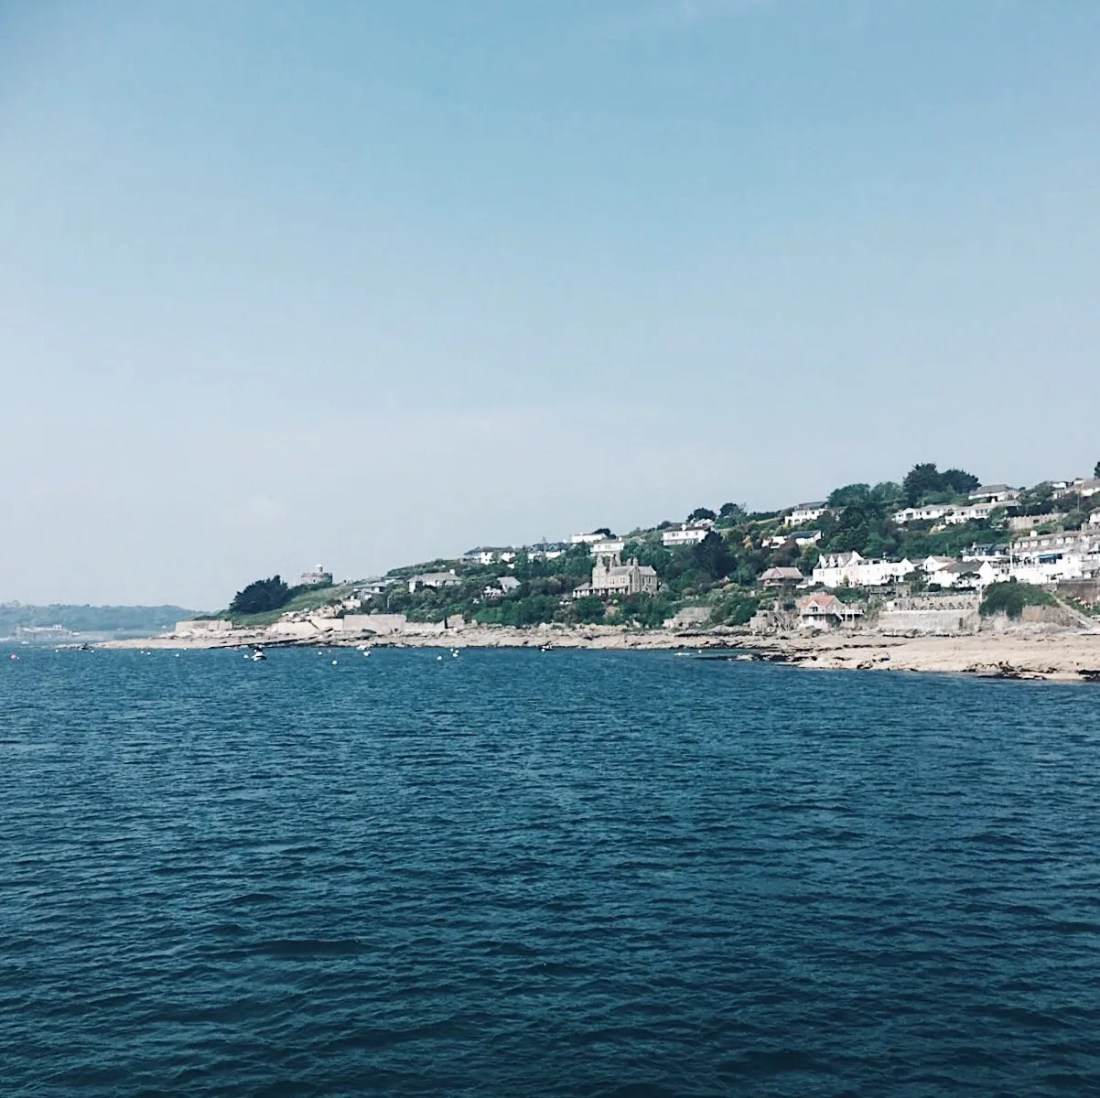 Ferry St Mawes To Falmouth Fal River Cornwall Days out Visit The Roseland